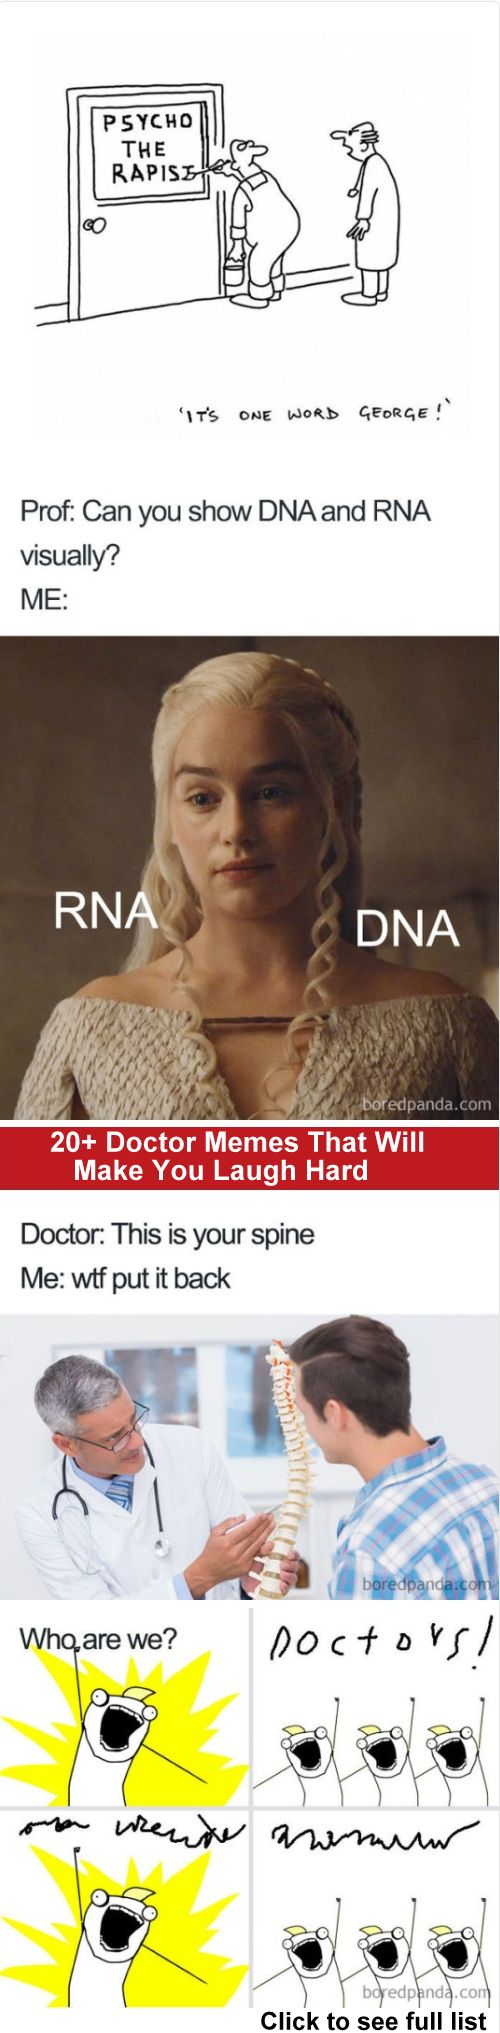 20 Doctor Memes That Will Make You Laugh Hard Ladnow Funny Doctor Memes Funny Nerd Memes